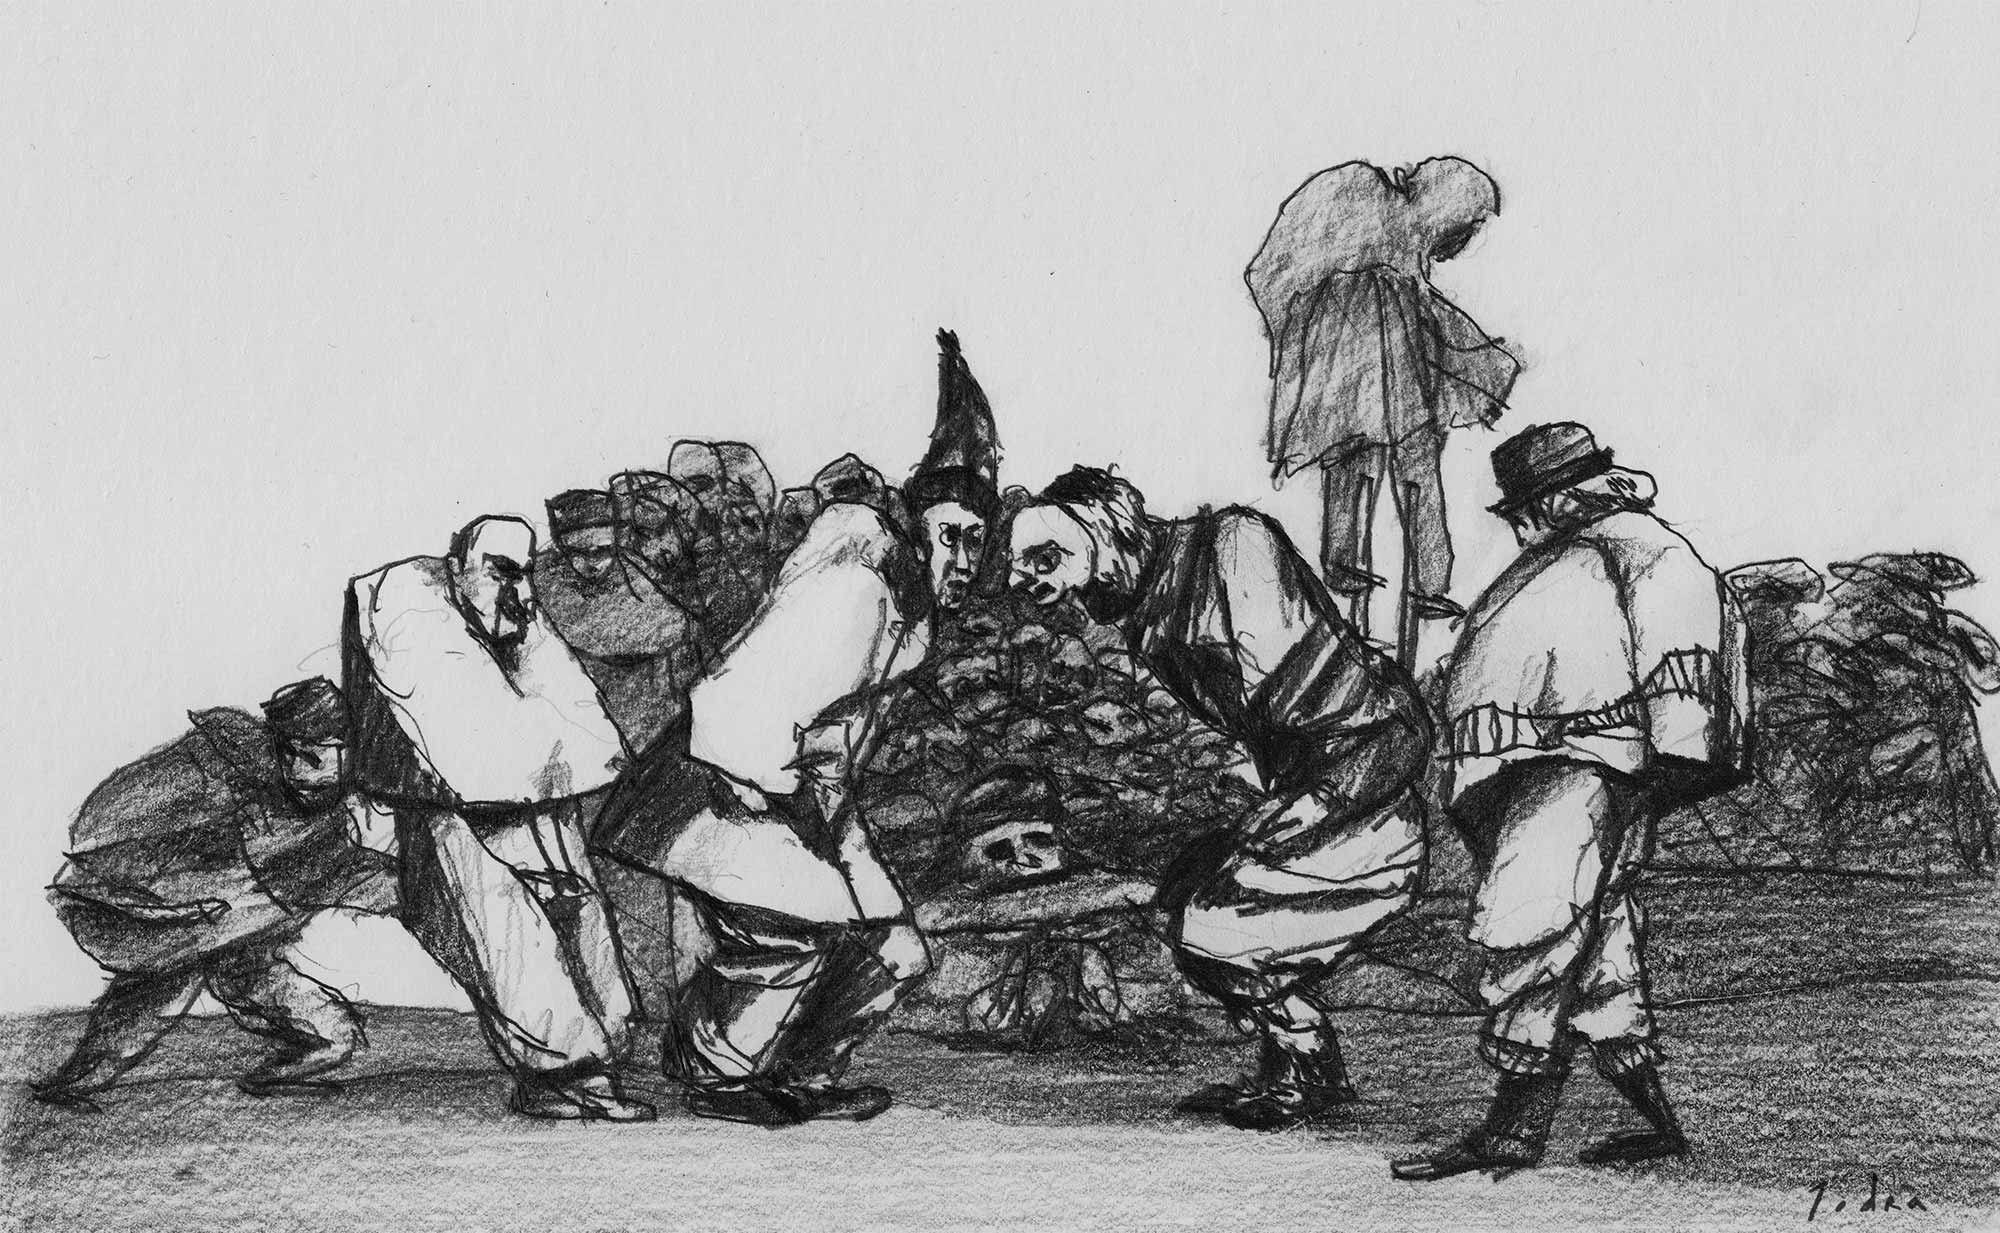 """Learning from Goya. """"Disparate de carnaval"""", after Goya. Disparate n.º 14. Drawing. Pencil on paper. Mario Jodra 2020"""